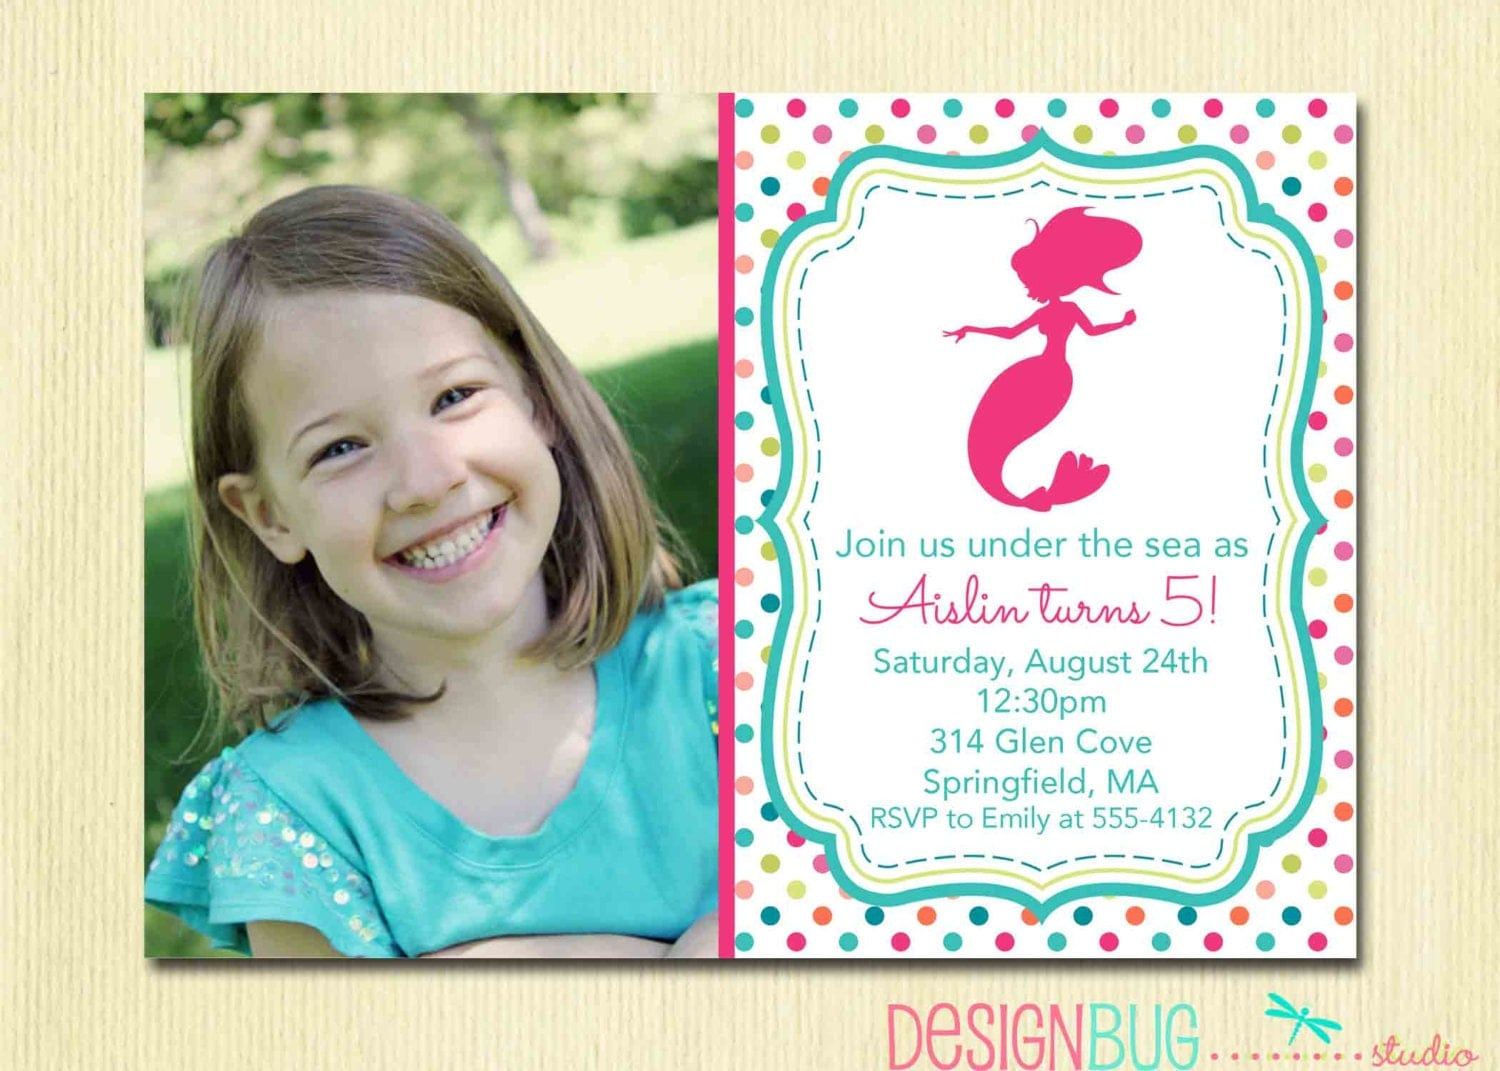 Mermaid Birthday Invitation Year Old ANY Age - Birthday invitation message for 2 year old